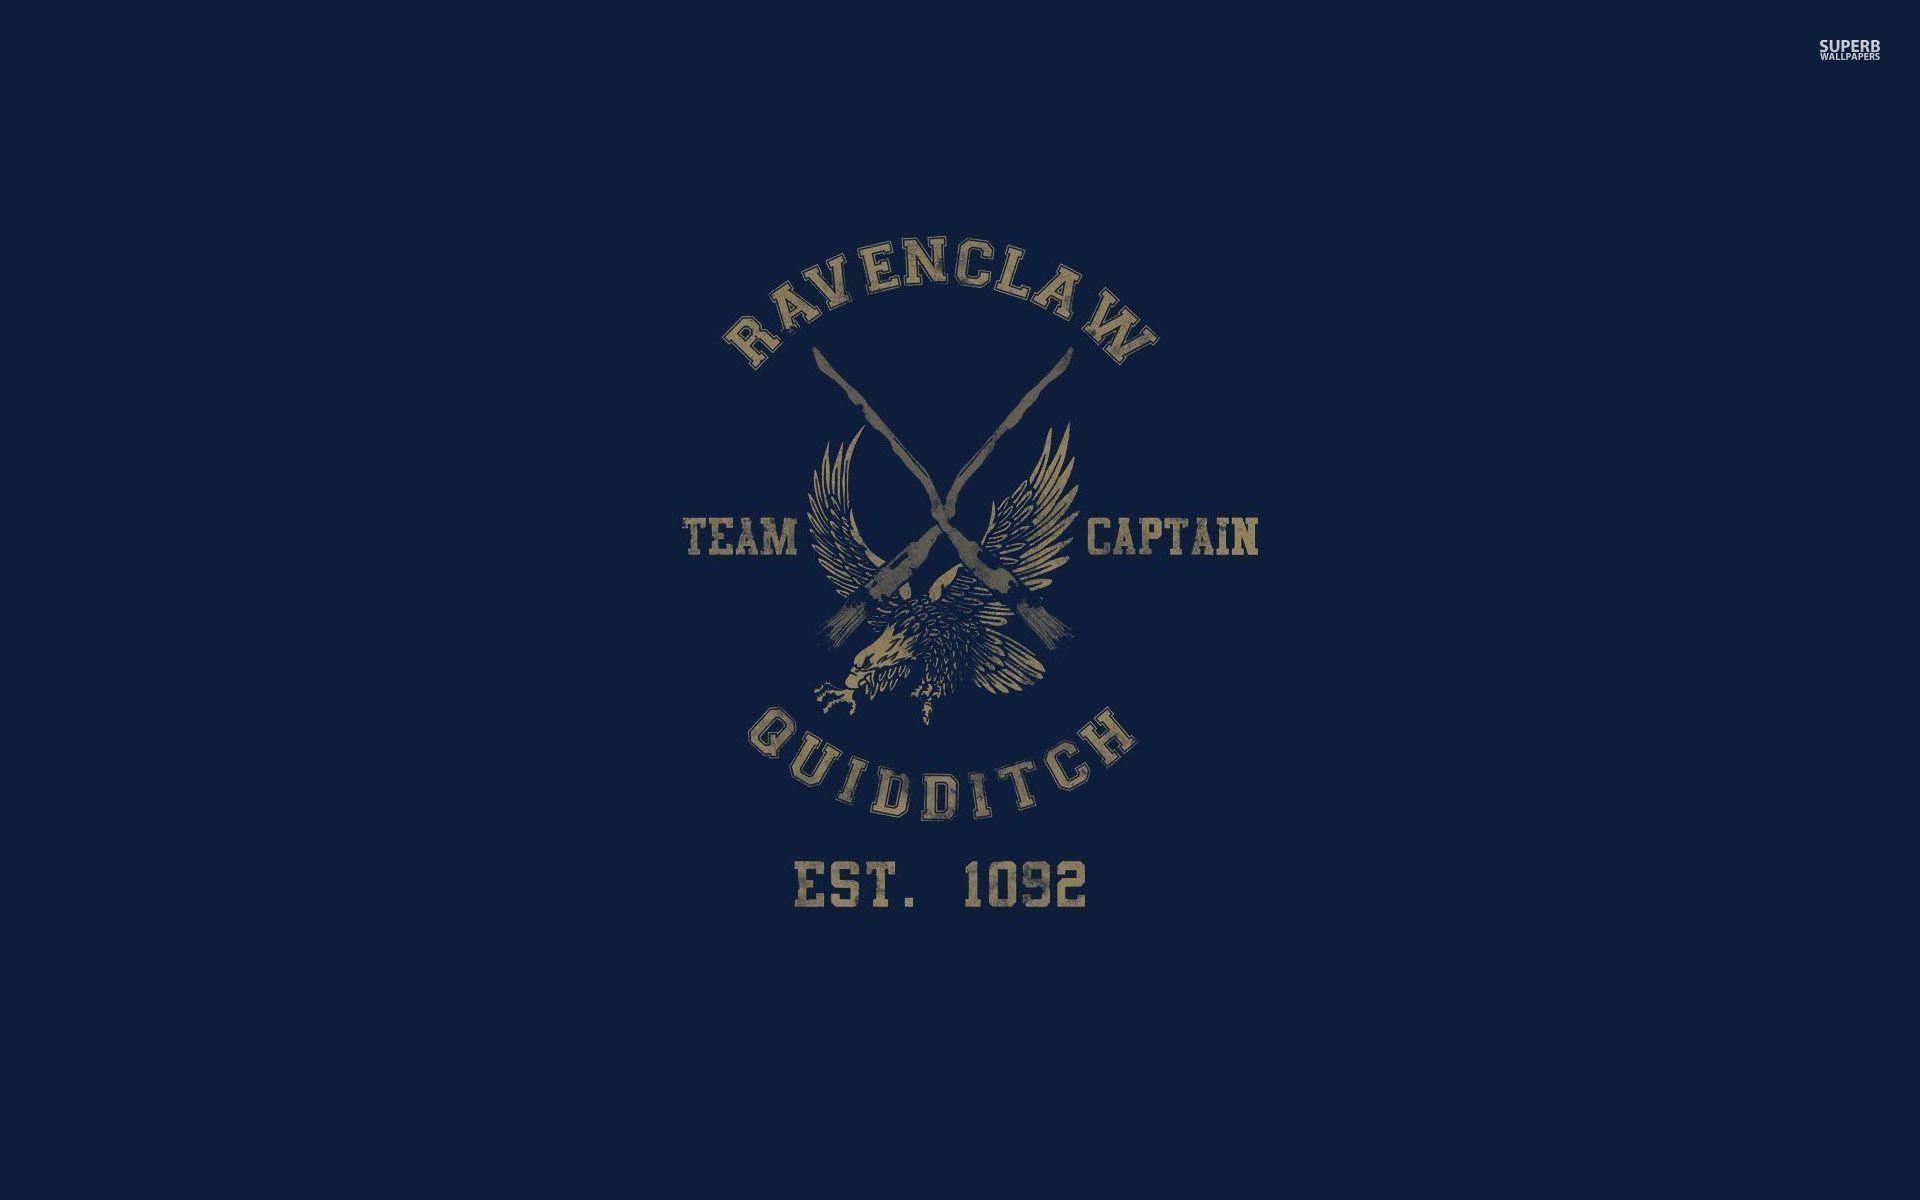 Harry Potter Ravenclaw Wallpapers ...